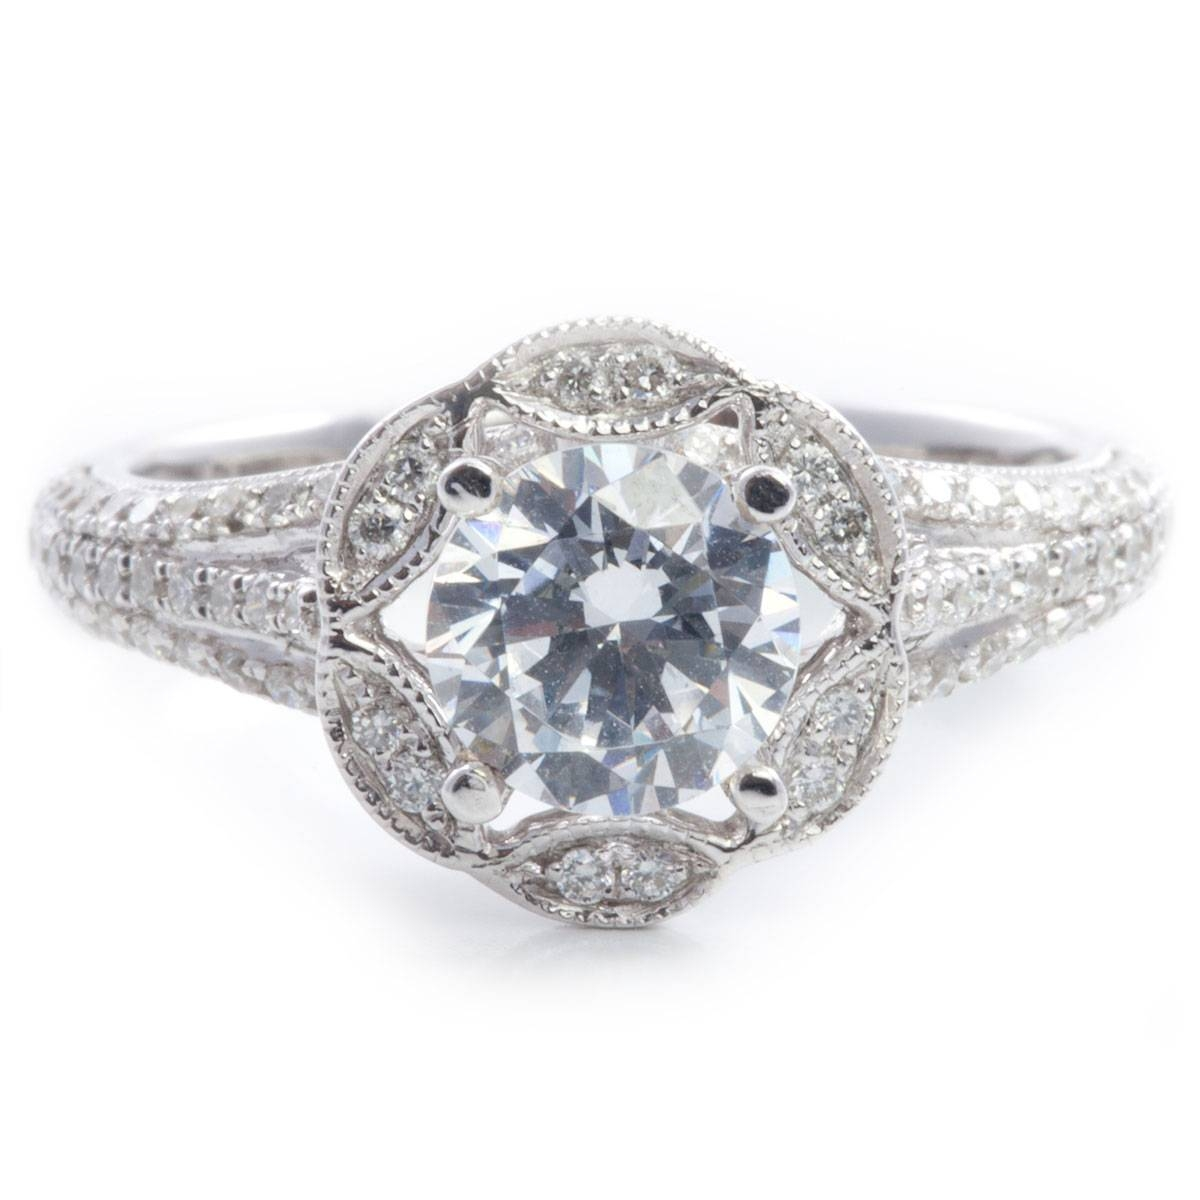 Antique Round Diamond Engagement Rings | Diamondstud Intended For Round Antique Engagement Rings (View 5 of 15)